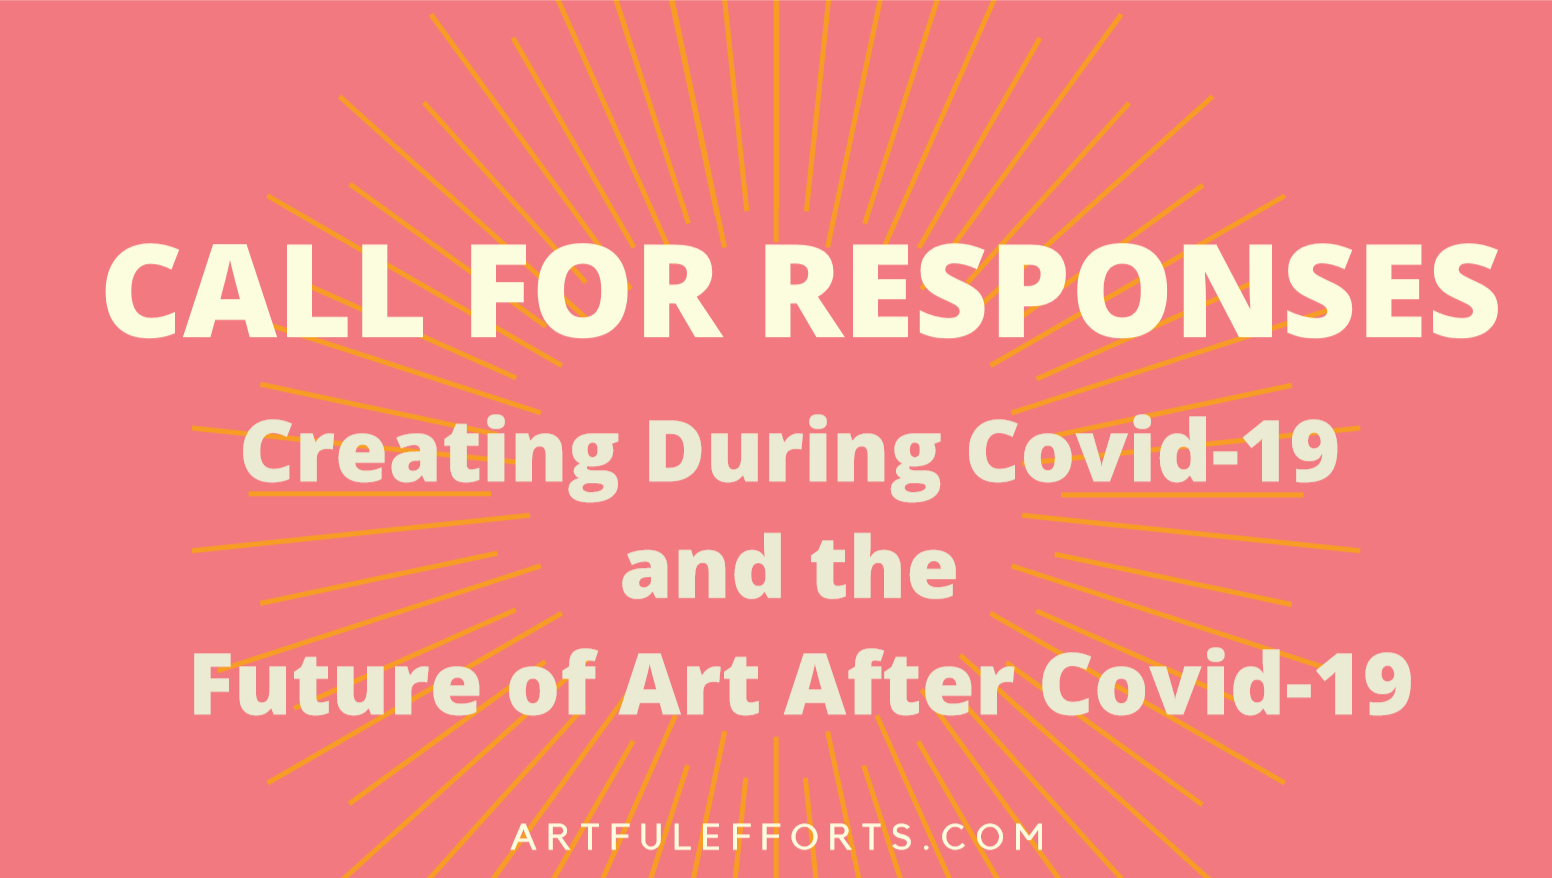 Creating During Covid-19 – Call for Response Submissions